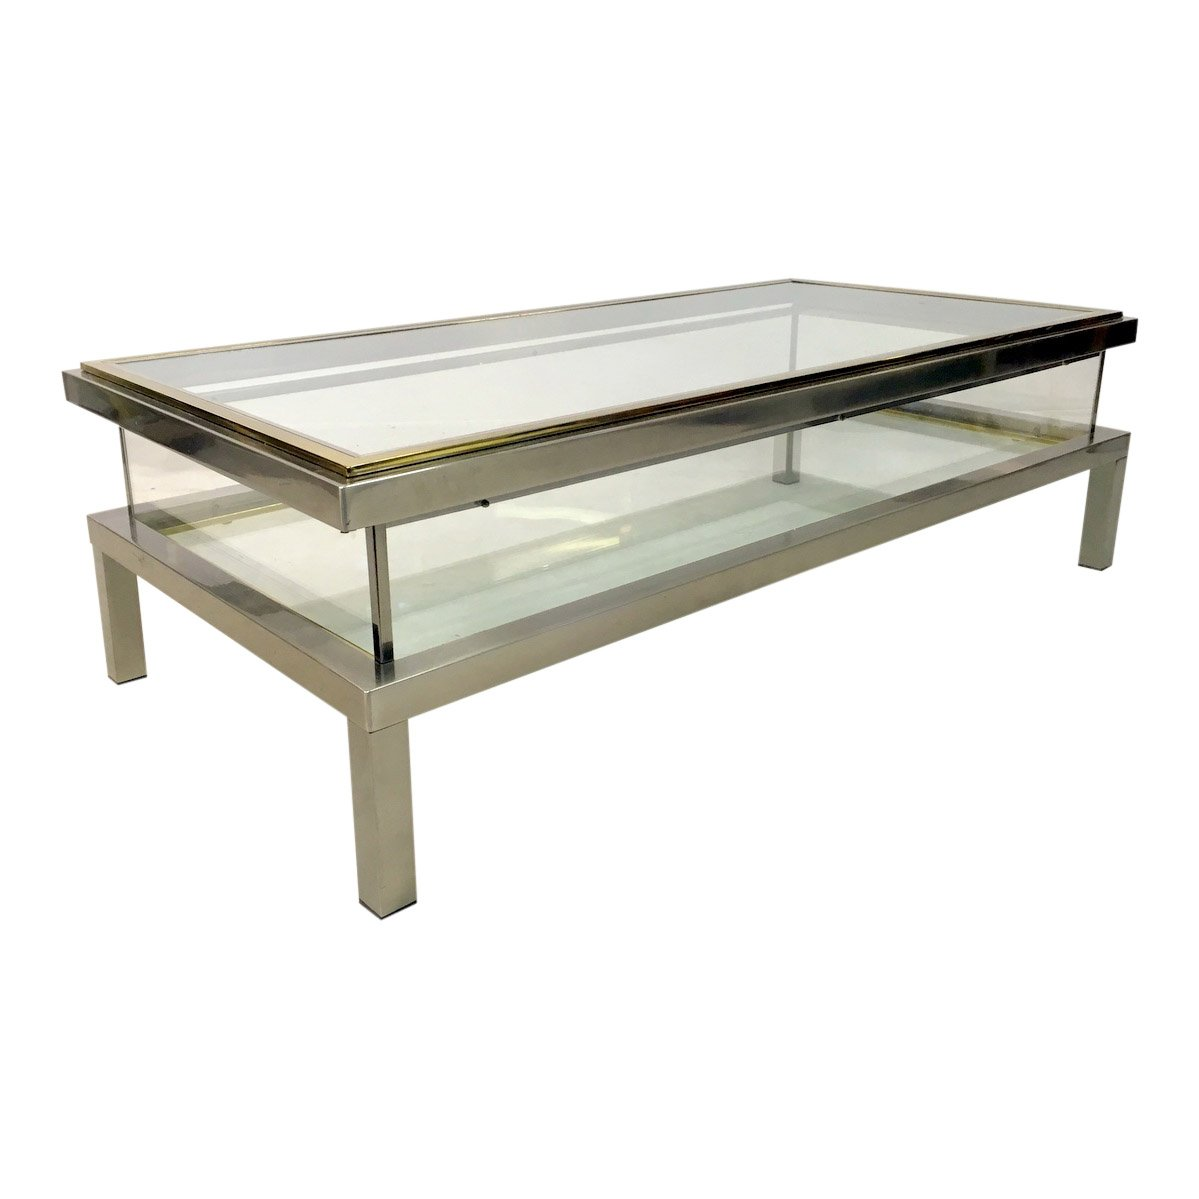 Vintage french sliding top vitrine coffee table for sale for Table a vi 6 2 of the stcw code